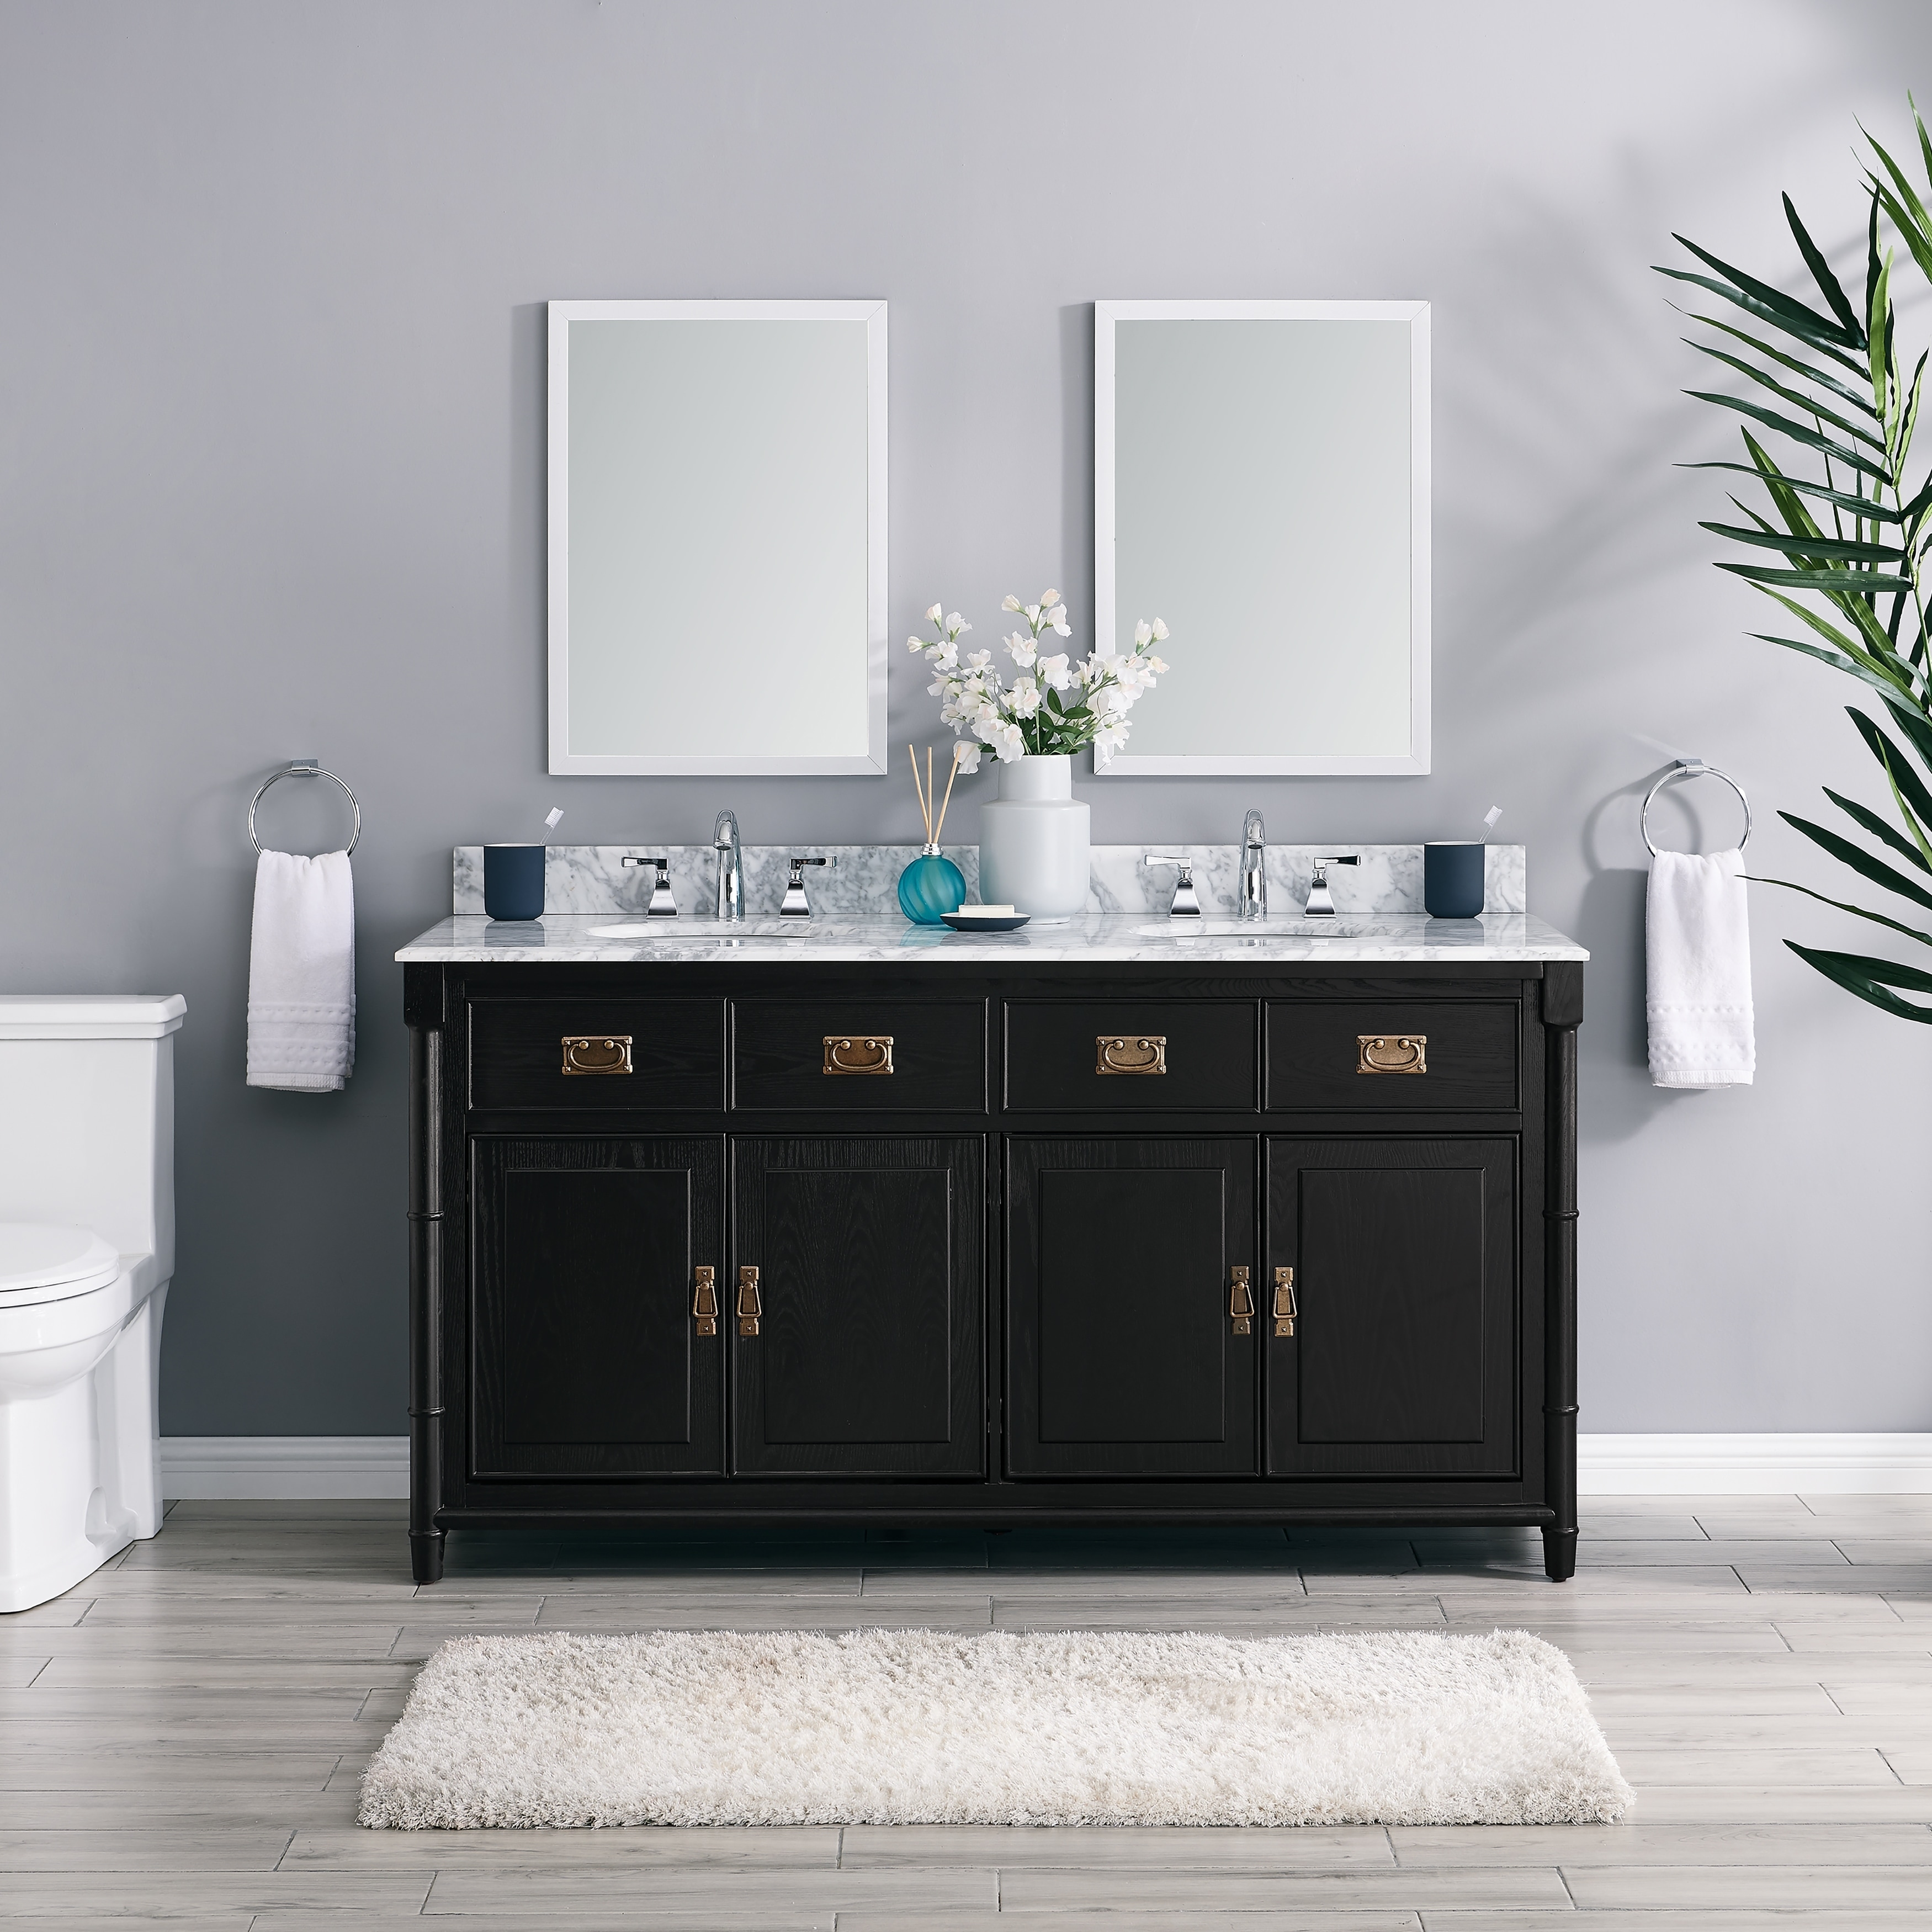 The Gray Barn Finley 5-inch Black Vanity with Marble Countertop